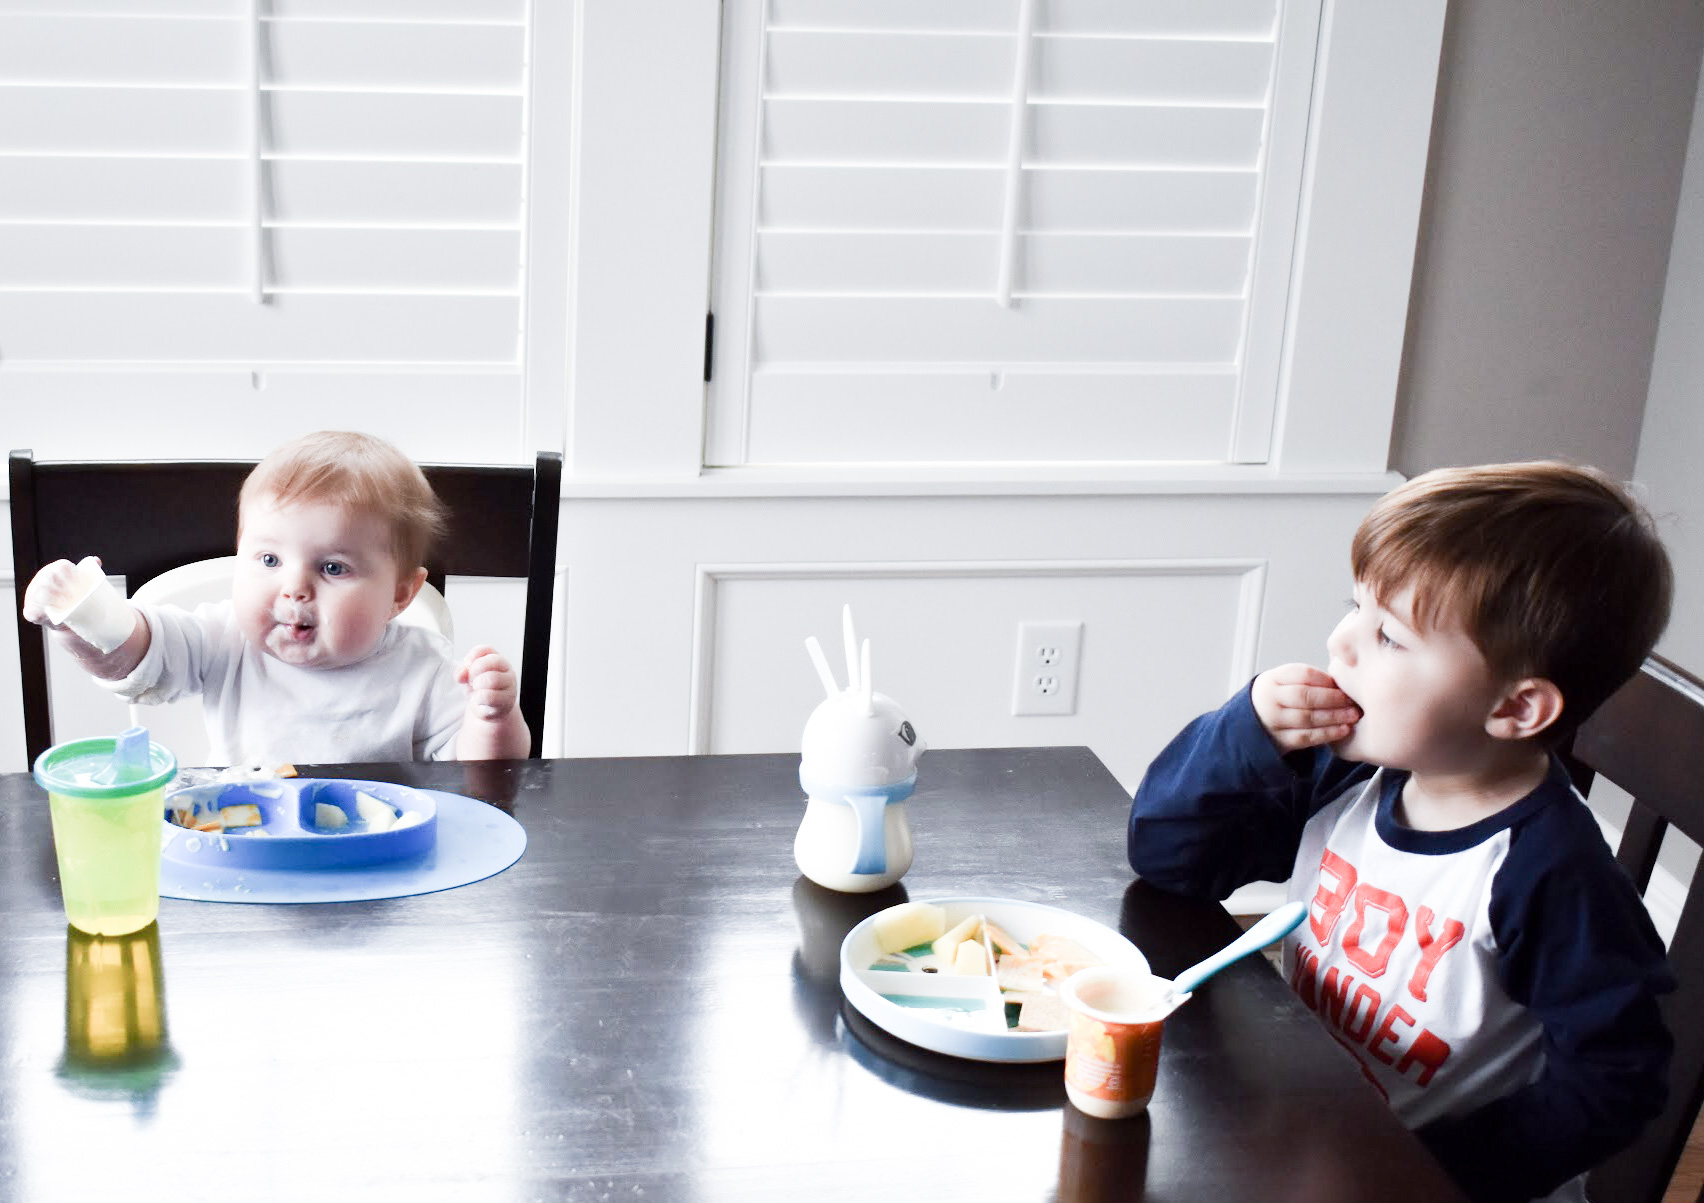 Lunch Ideas for Preschooler and Baby: Getting lunch on the table for a preschooler and baby is just one of the challenges moms face during the day. Toddlers are notoriously picky eaters, so what can you serve that will please everyone? Of course, you want preschooler lunch ideas that don't take too much prep time, because, well, you have a preschooler. Lunch ideas for baby are difficult, too! Here's some examples of typical meals for a preschooler and baby at my house. #ad